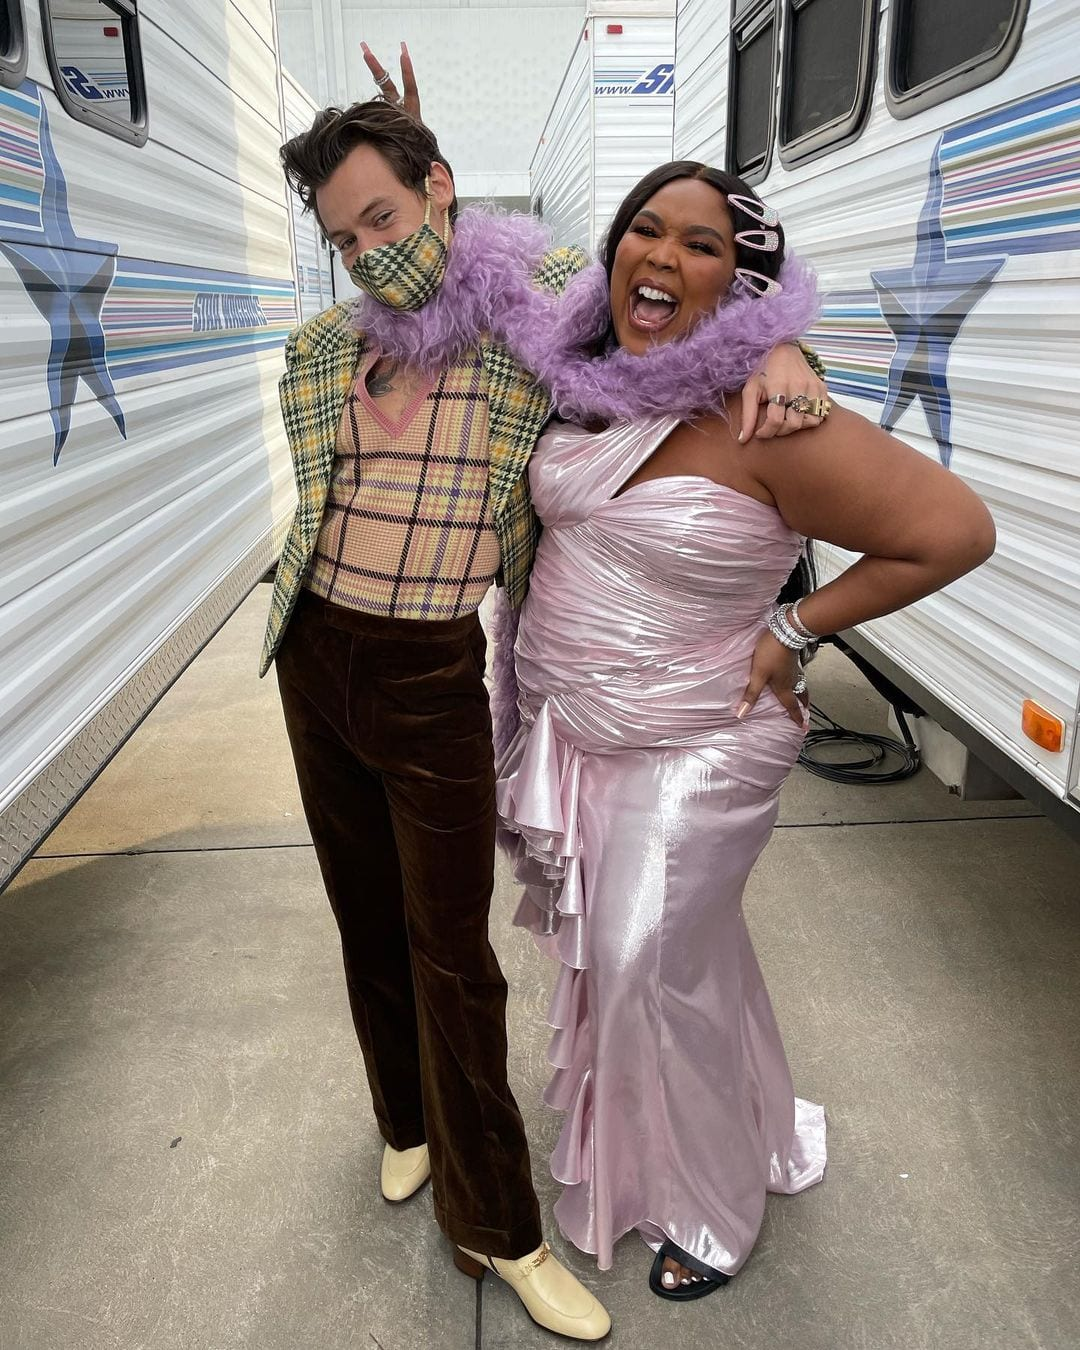 who is lizzo dating?